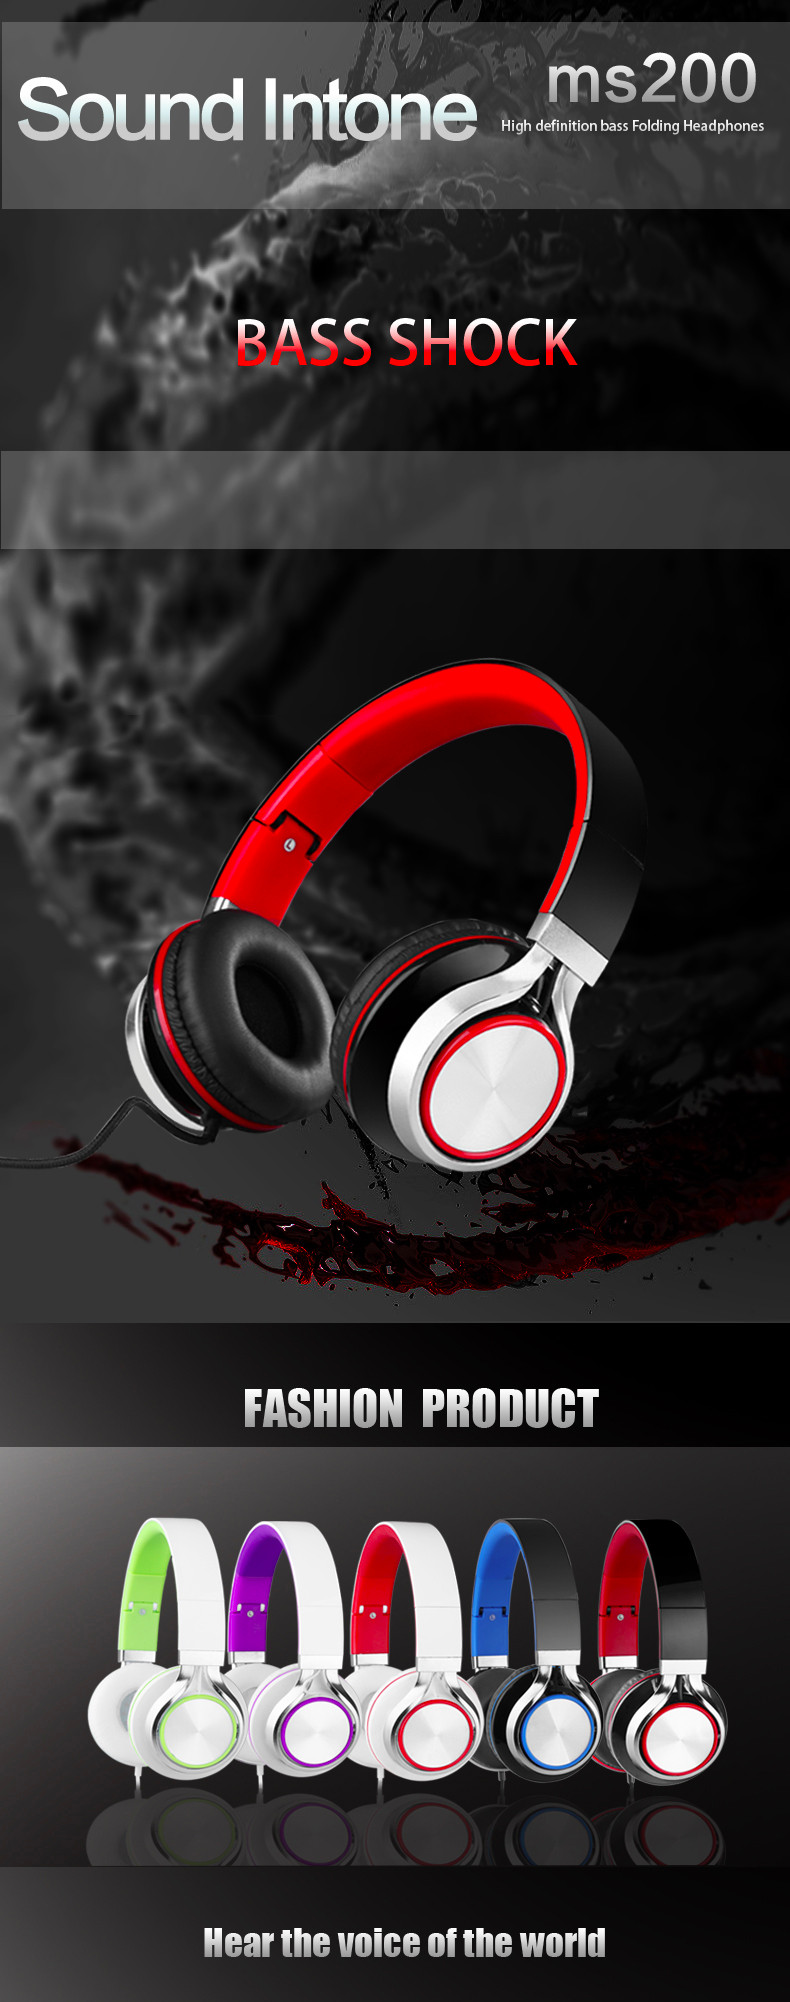 Sound Intone Ms200 Stereo Headsets Strong Bass Headphones for Smartphones Xiaomi Mp3/4 Laptop Computers Tablet Folding Earphones